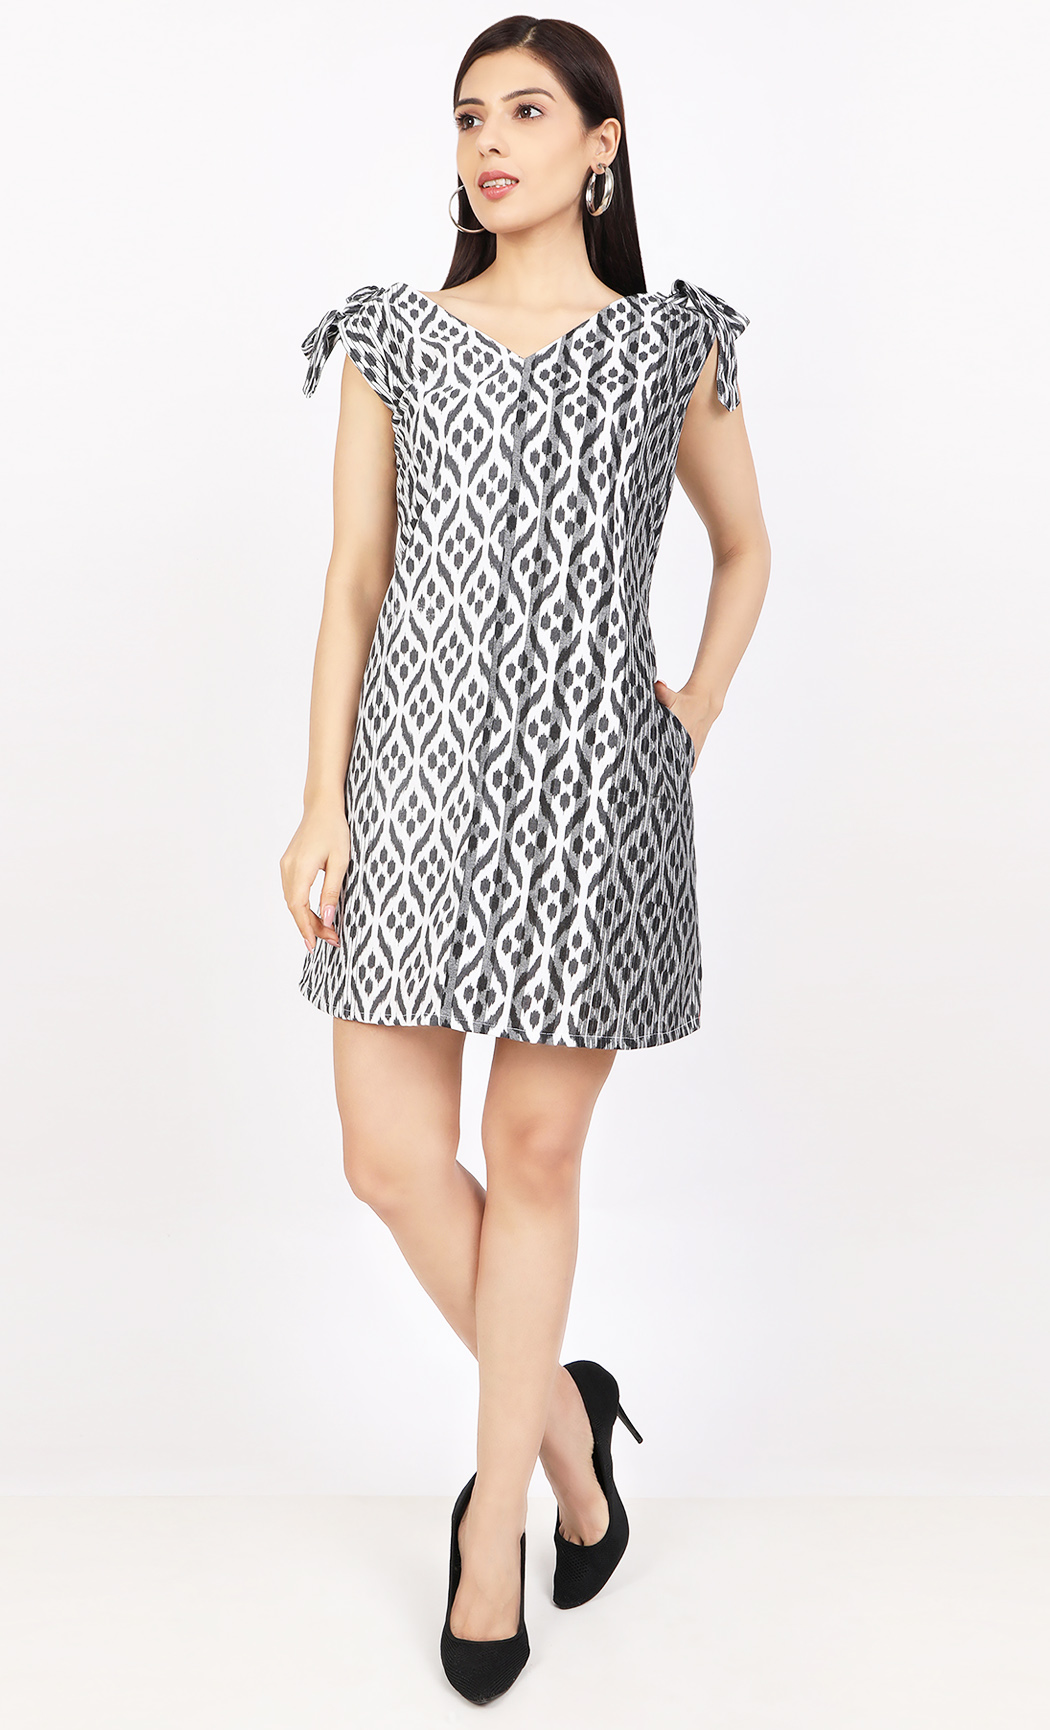 Black and White Ikat Printed Dress. Buy Online